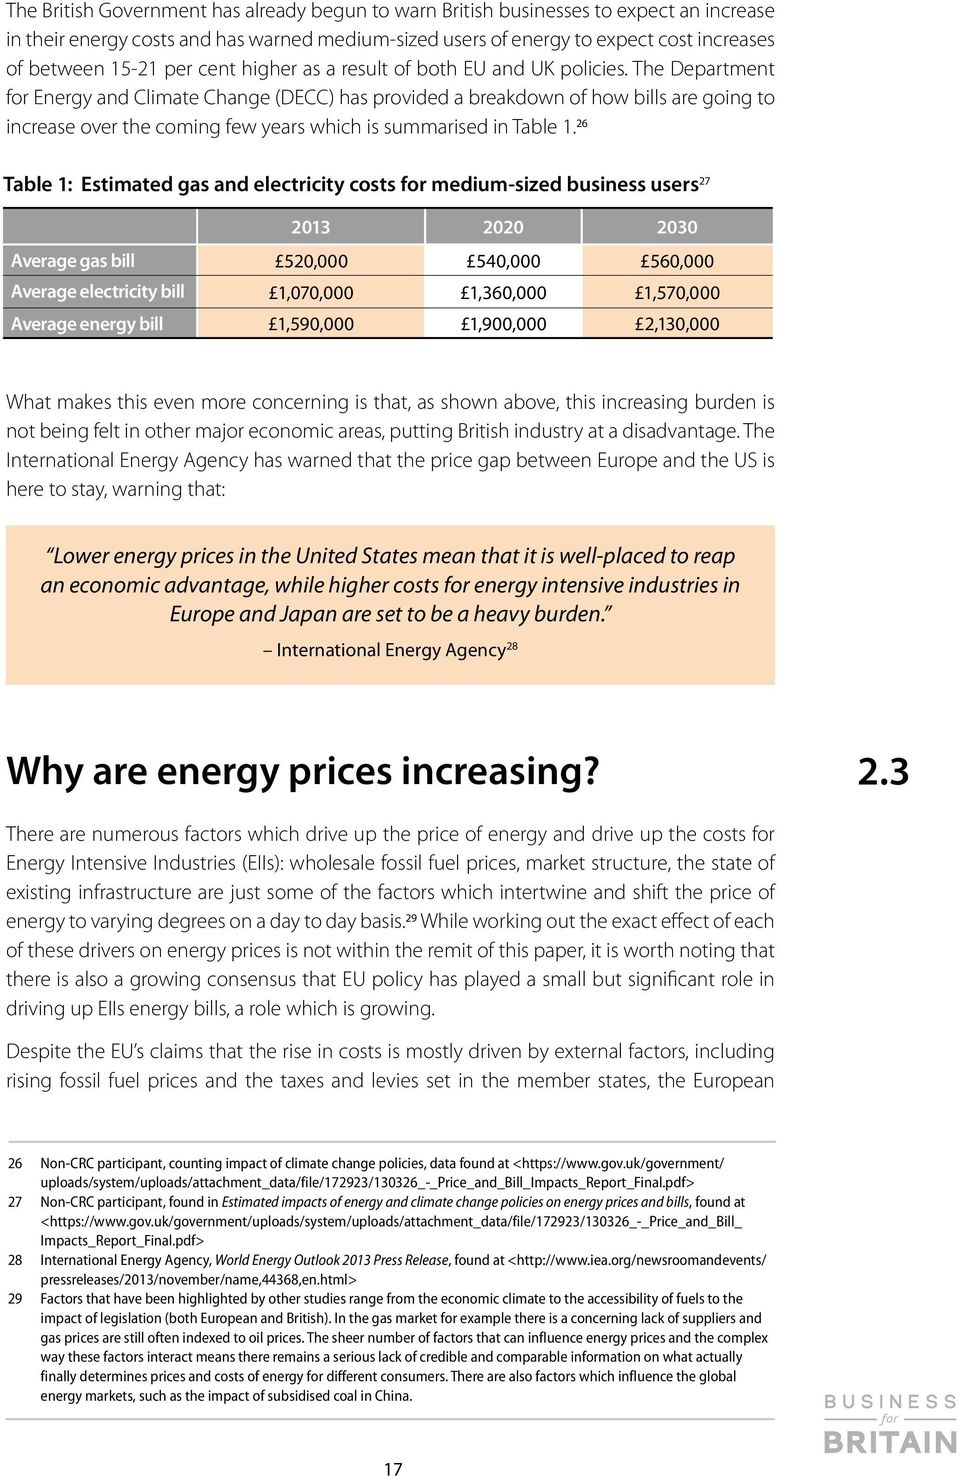 The Department for Energy and Climate Change (DECC) has provided a breakdown of how bills are going to increase over the coming few years which is summarised in Table 1.